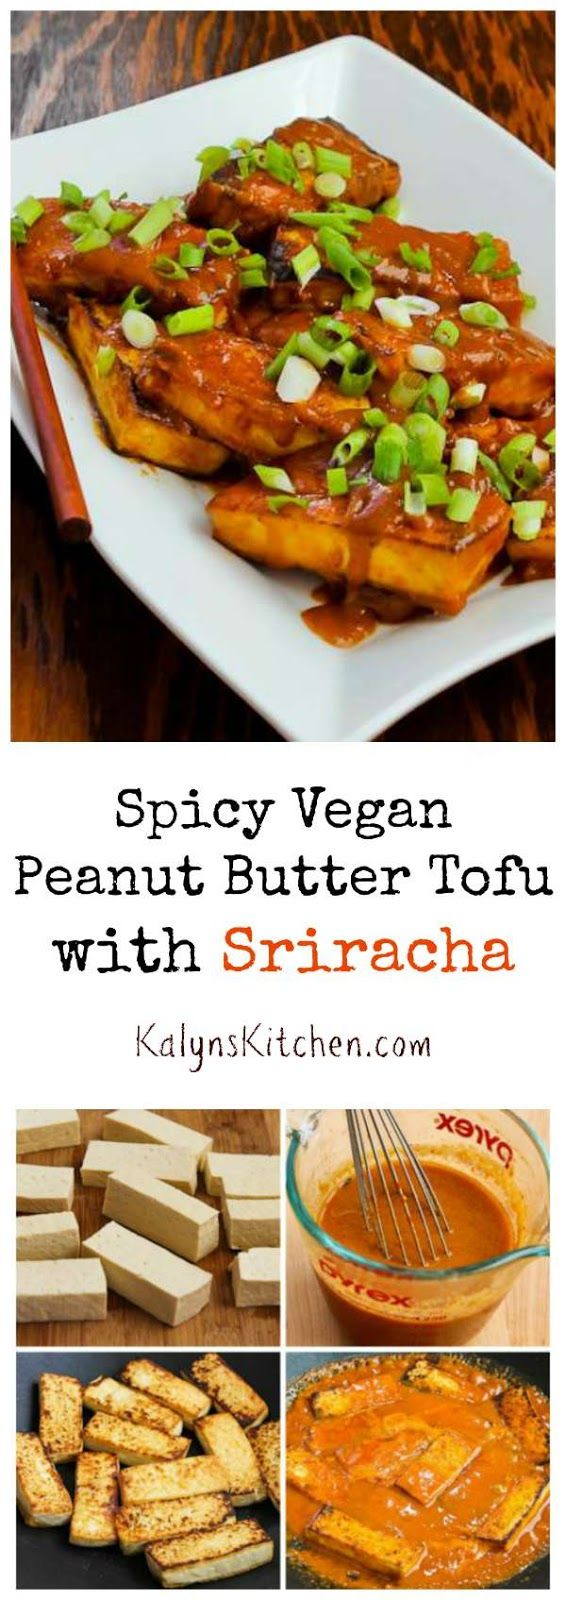 This easy and delicious recipe for Spicy Vegan Peanut Butter Tofu with Sriracha has been hugely popular on the blog. (Low-Carb, Gluten-Free) [found on KalynsKitchen.com] --------> http://tipsalud.com